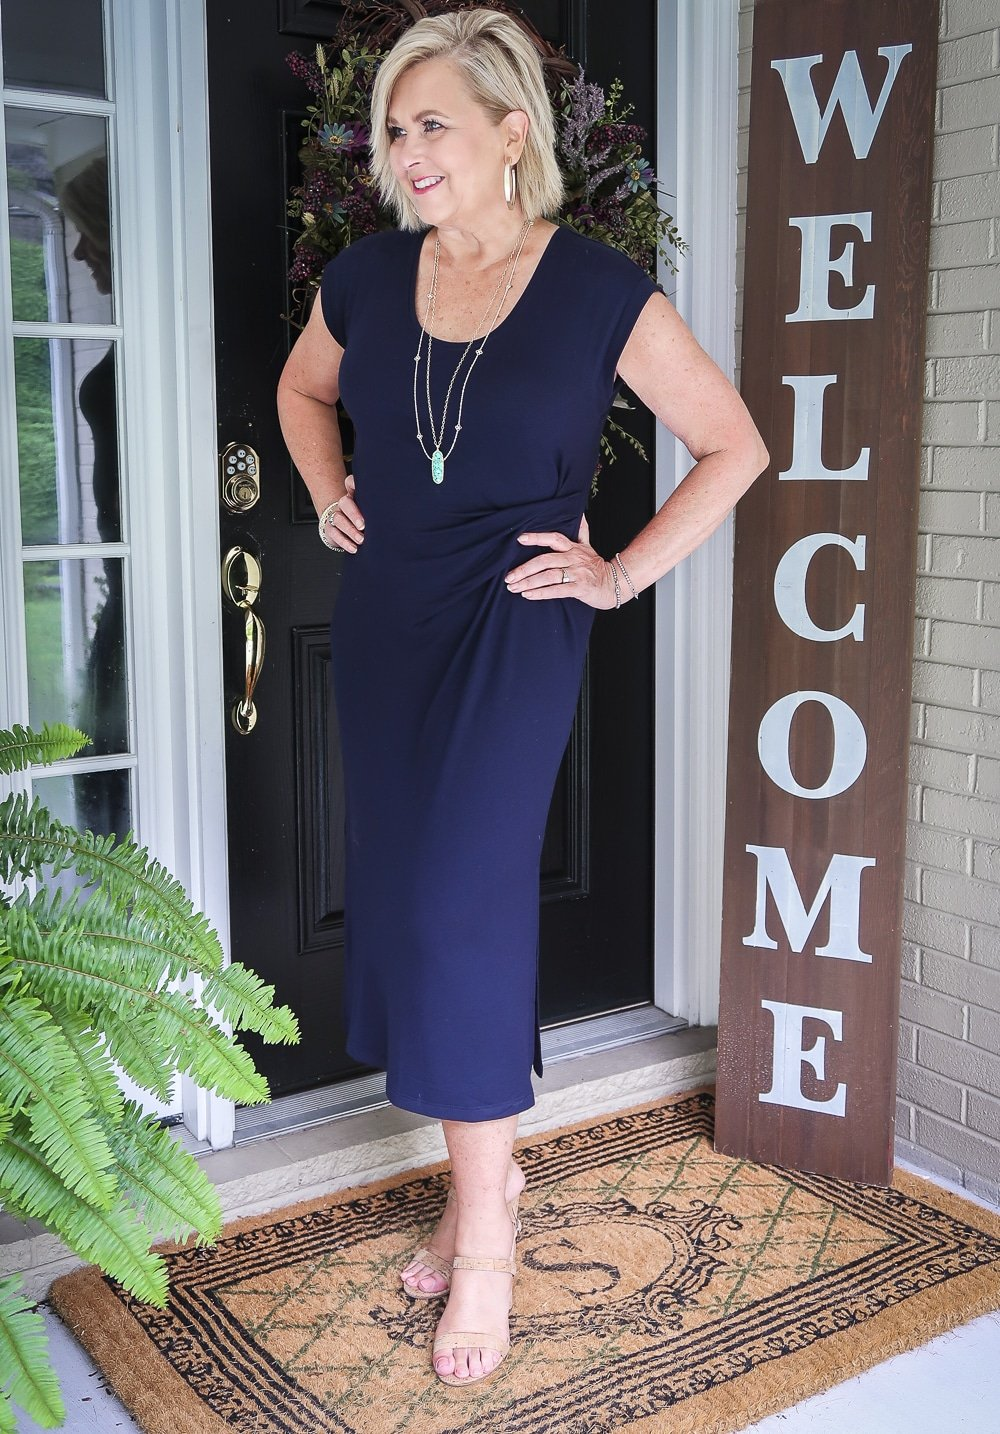 Fashion Blogger 50 Is Not Old is looking away and wearing a navy scoop neck midi dress with cork heels